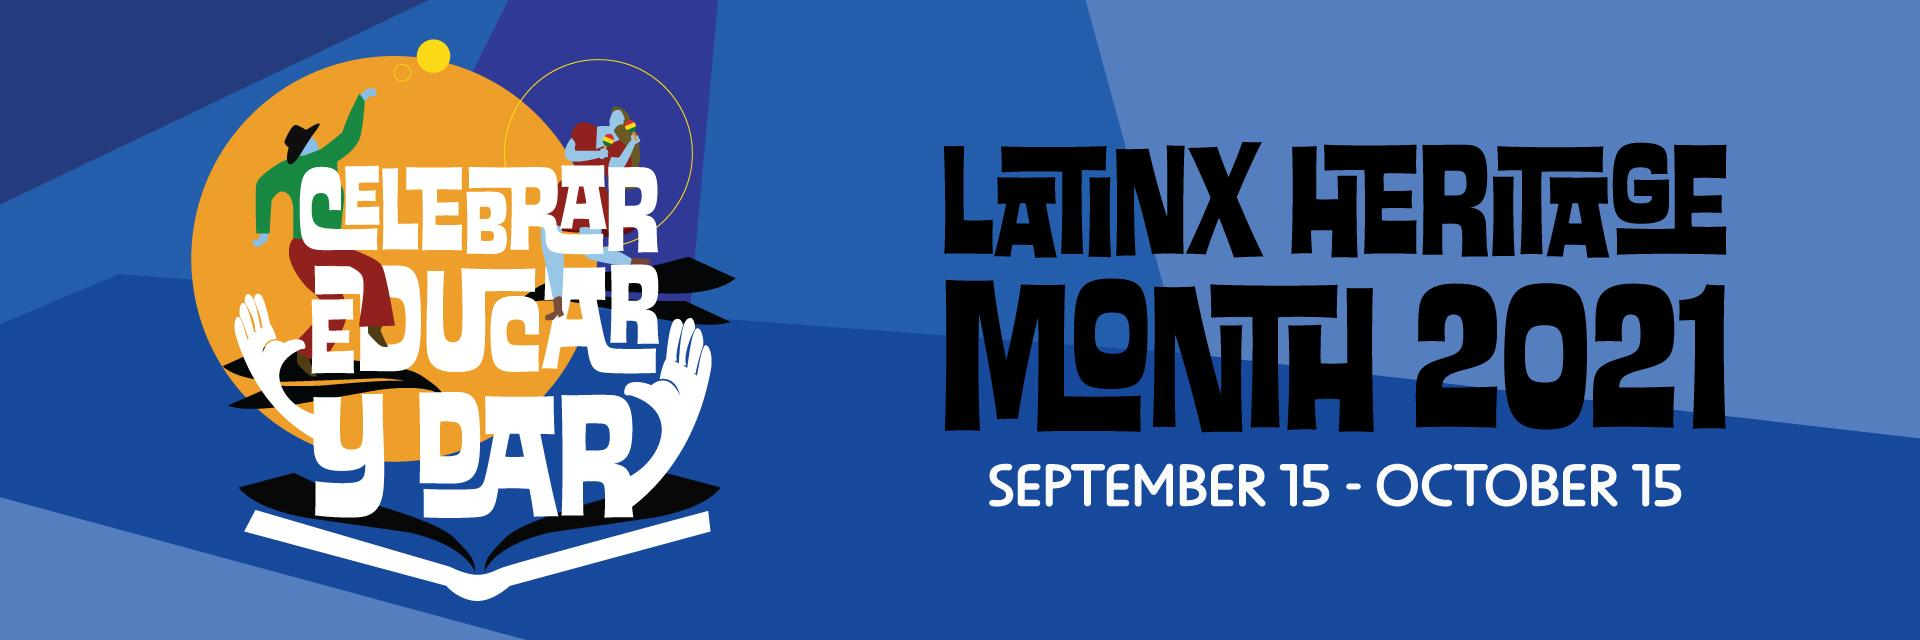 """Latinx Heritage Month Banner that reads """"Celebrar, Educar, y Dar"""" or Celebrate, Educate, and Give. The image is a book with arms opening and two figures dancing with a blue background."""